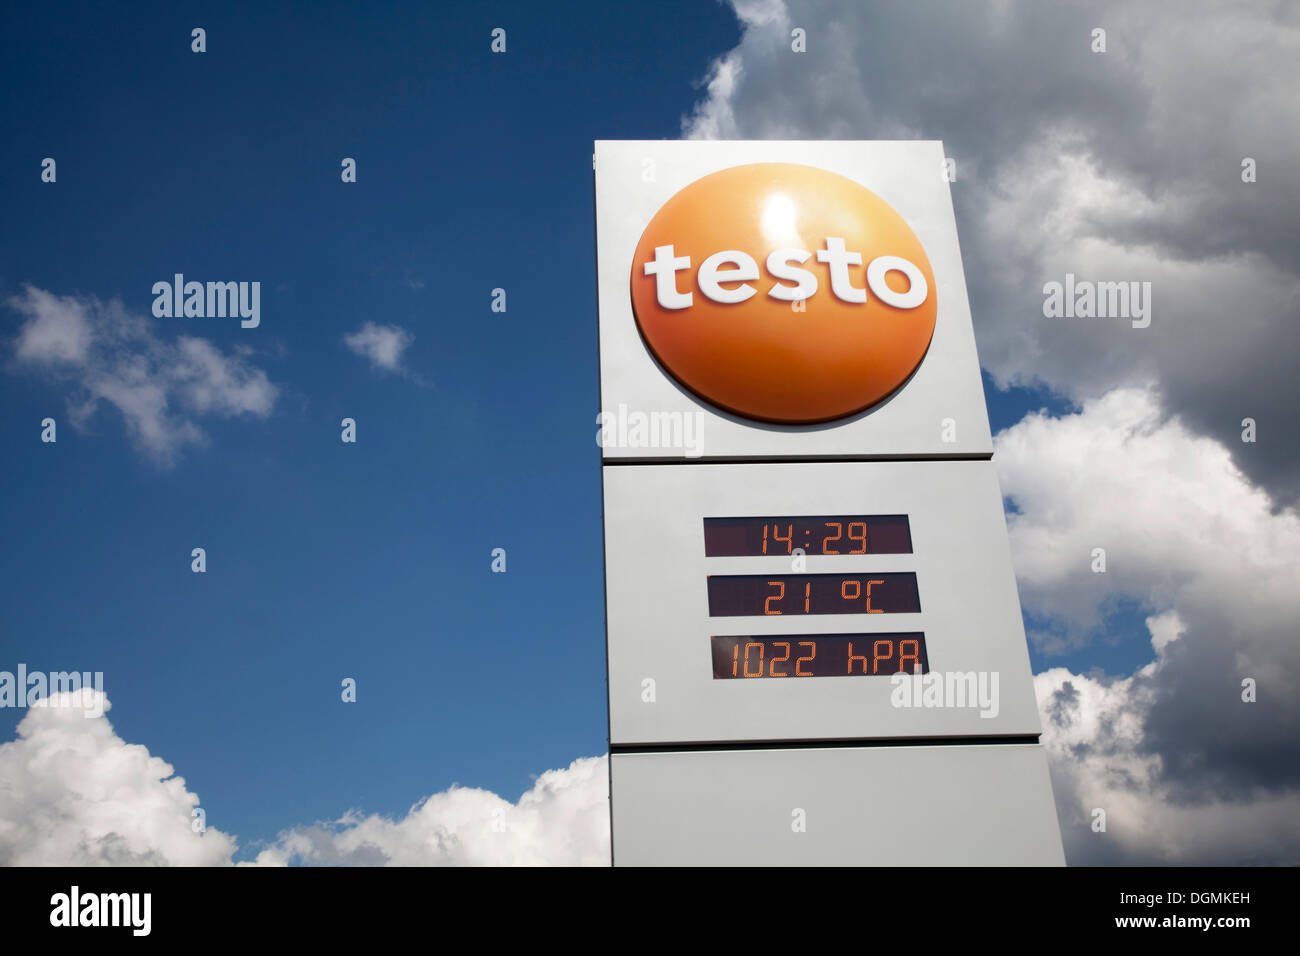 Testo outdoor display for time, temperature and air pressure readings, Testo is the world market leader in portable metrology - Stock Image